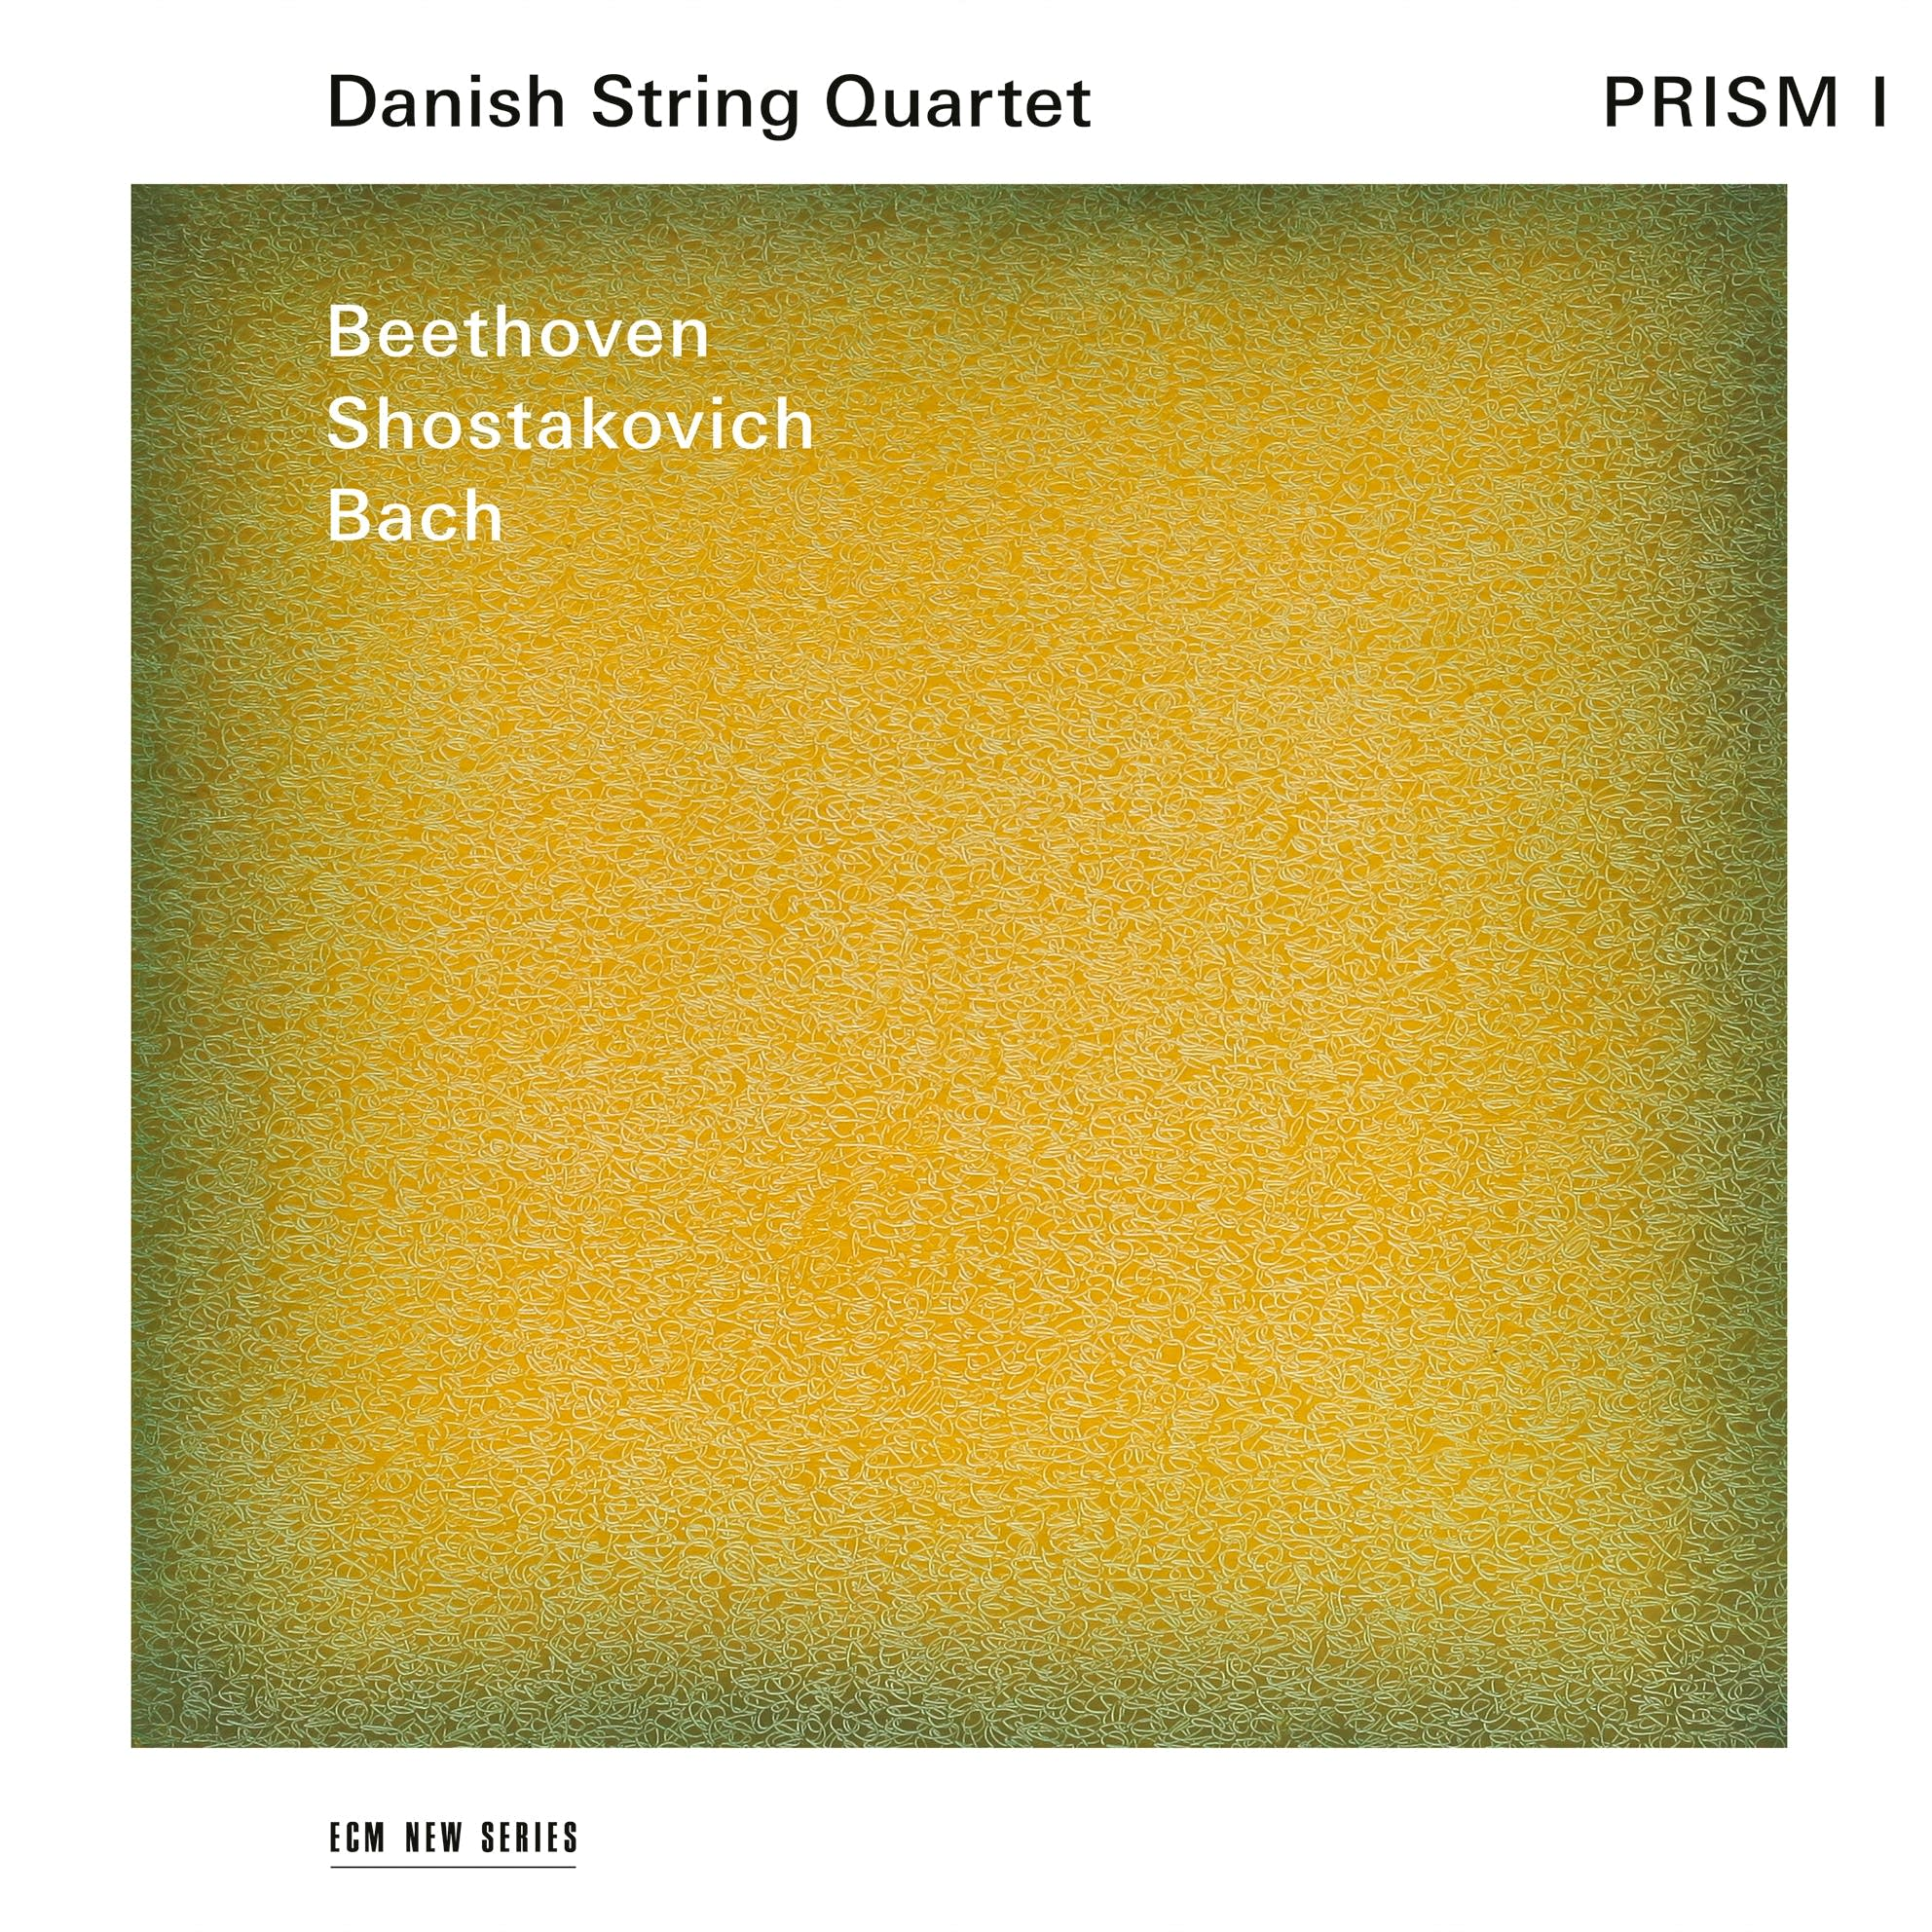 The Danish String Quartet: 'Prism 1'